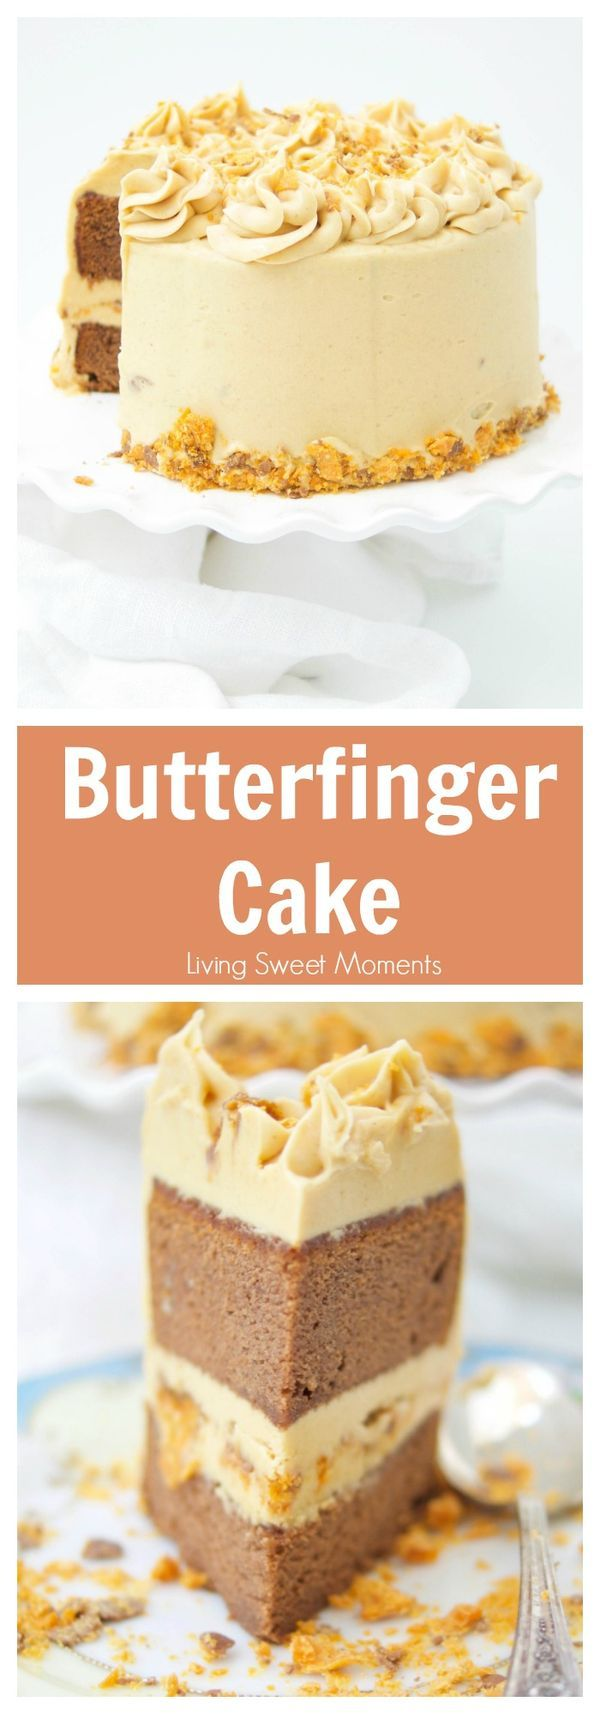 This delicious Butterfinger Cake Recipe dessert is made from scratch and…